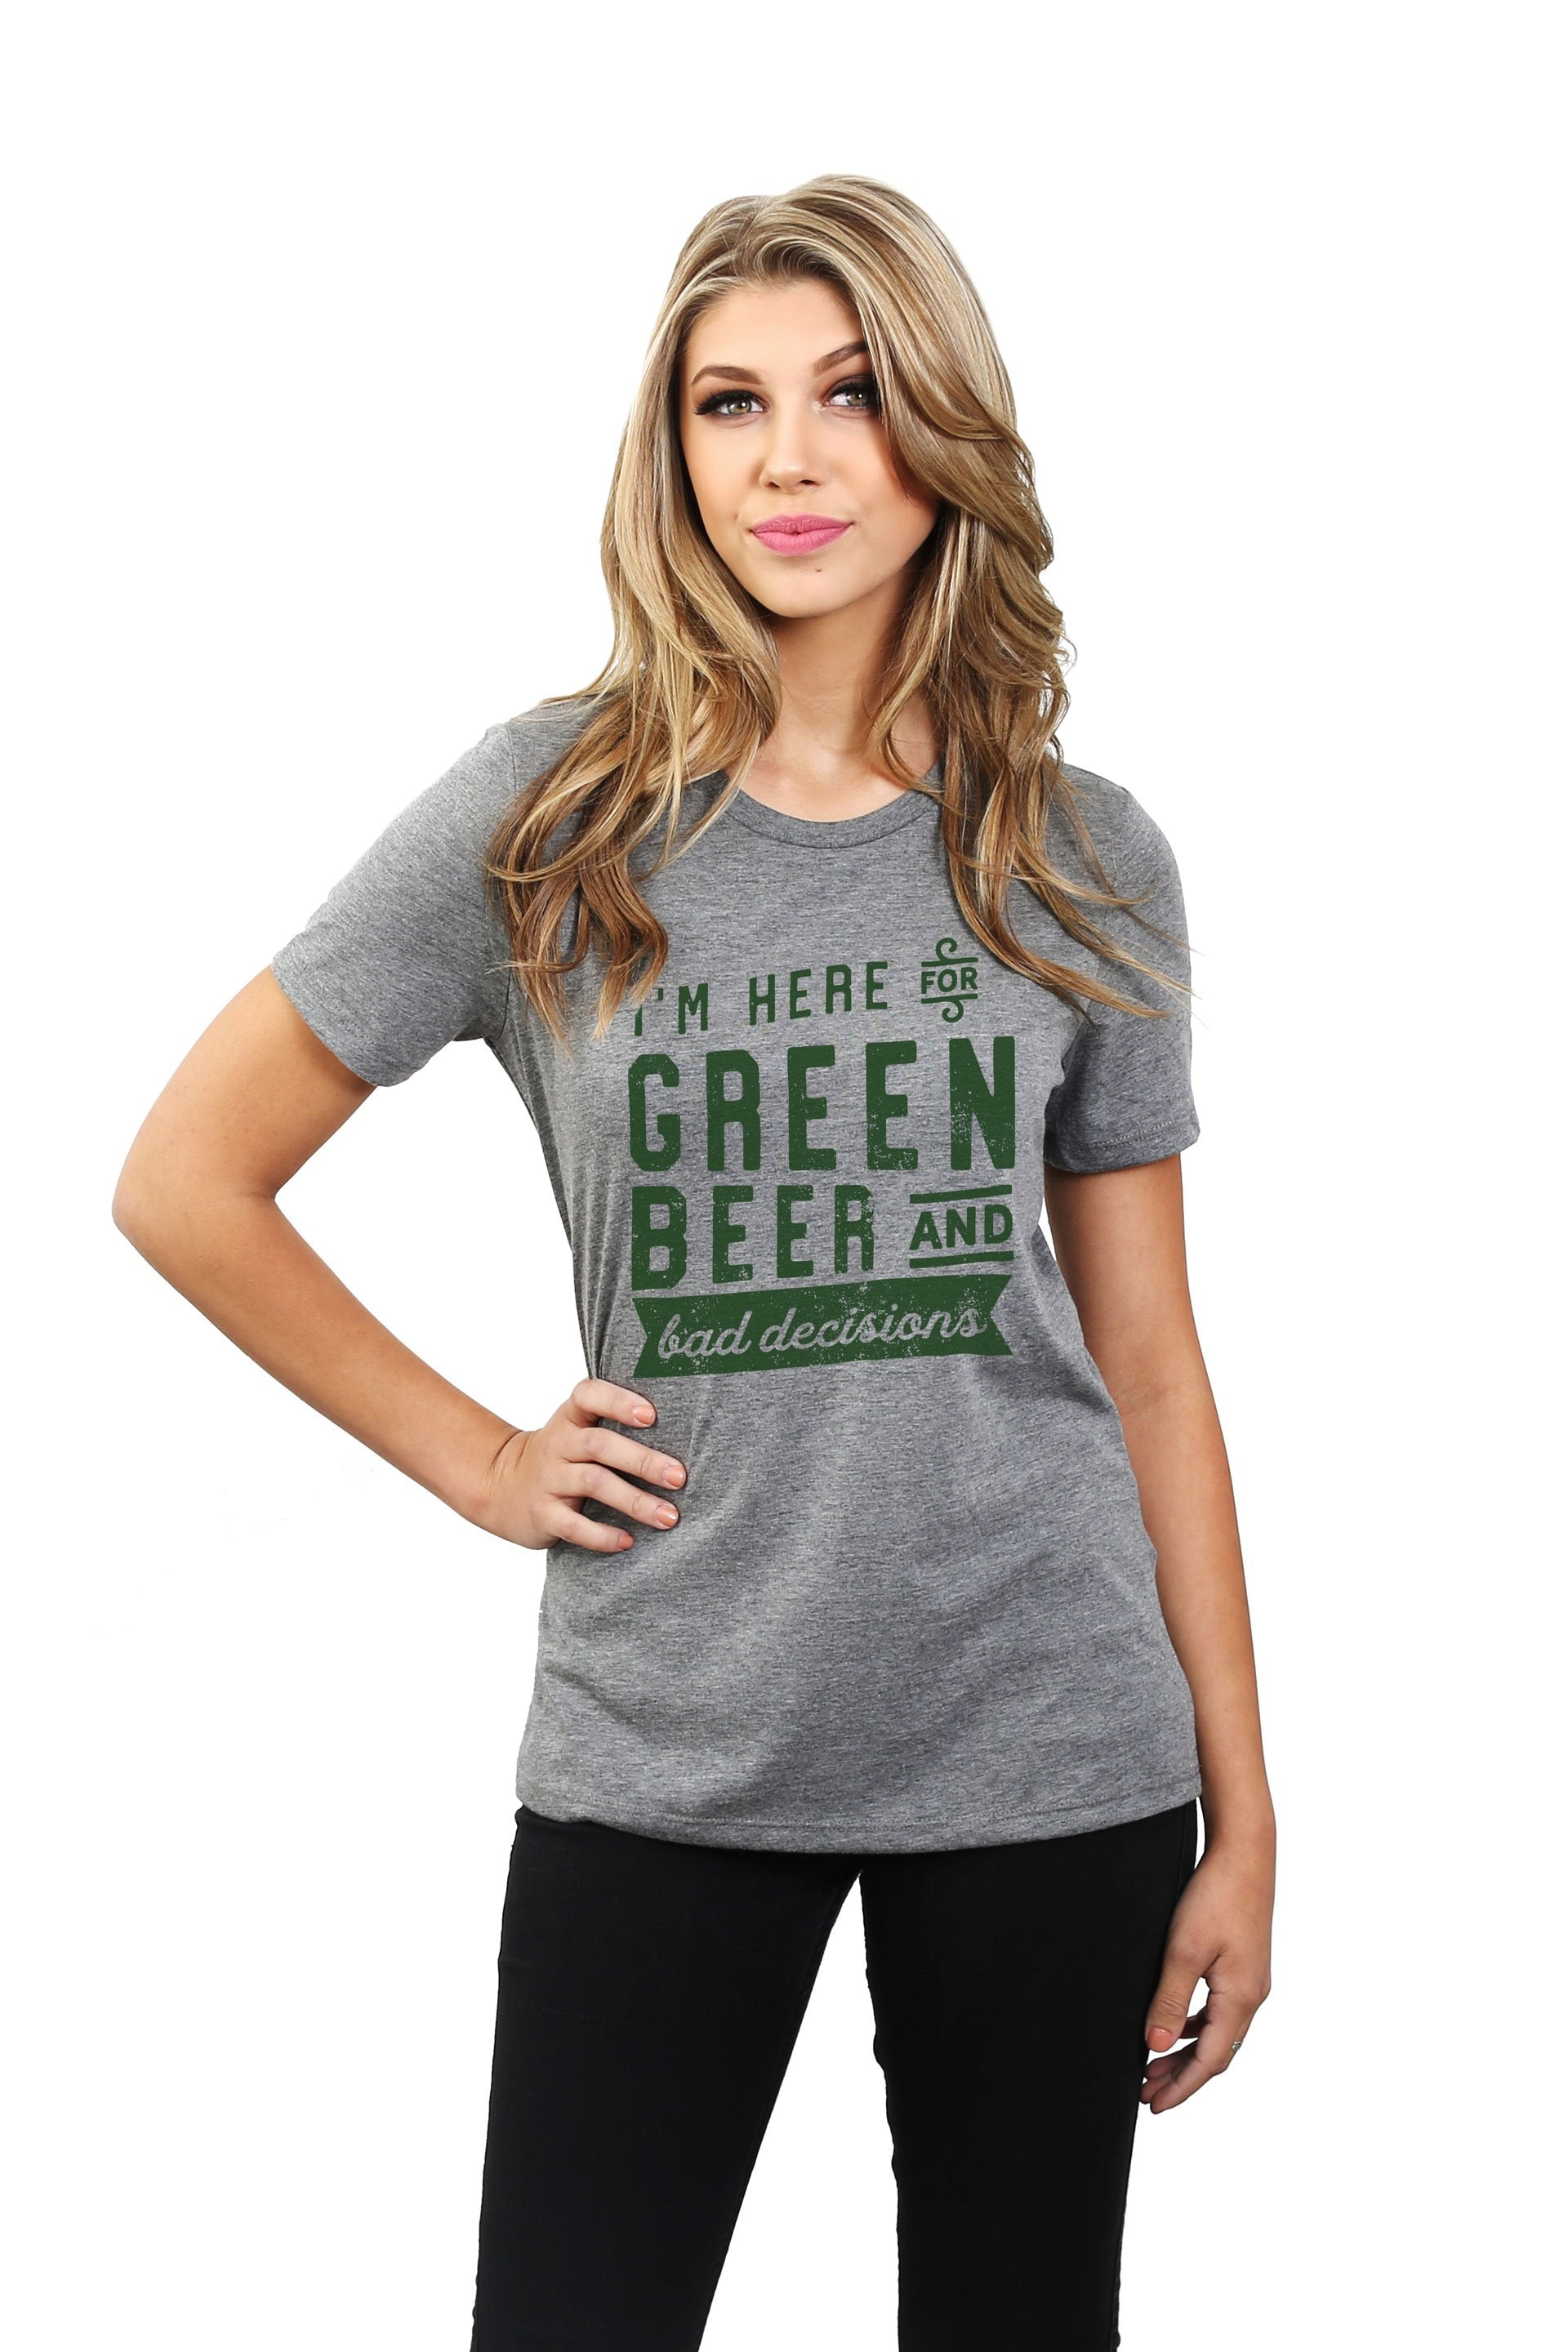 I'm Here For Green Beer And Bad Decisions Women's Relaxed Crewneck Graphic T-Shirt Top Tee Exclusive Shamrock Green